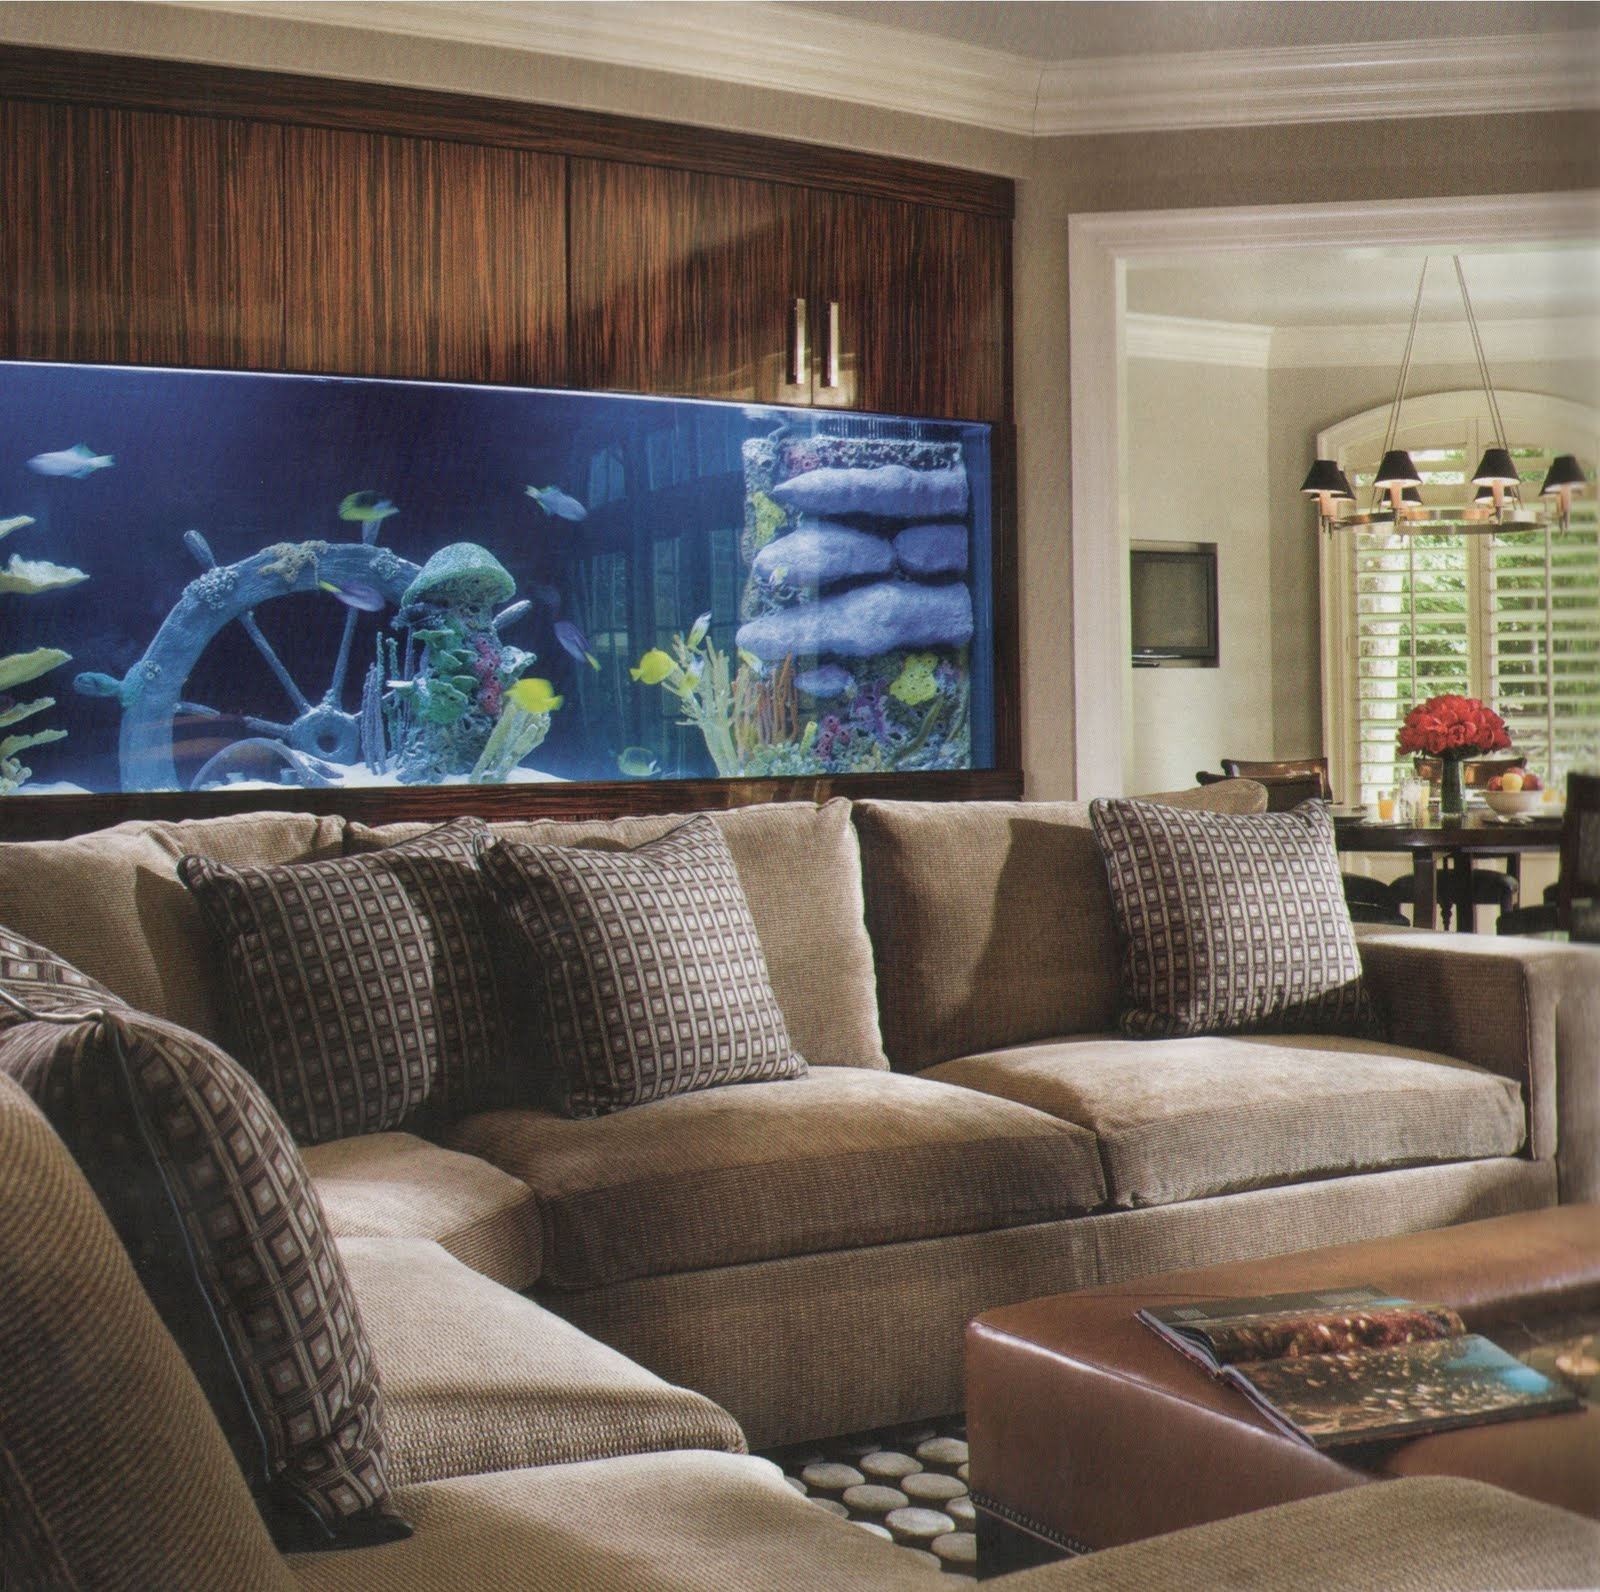 Vintage Aquarium In Living Room (Image 19 of 21)